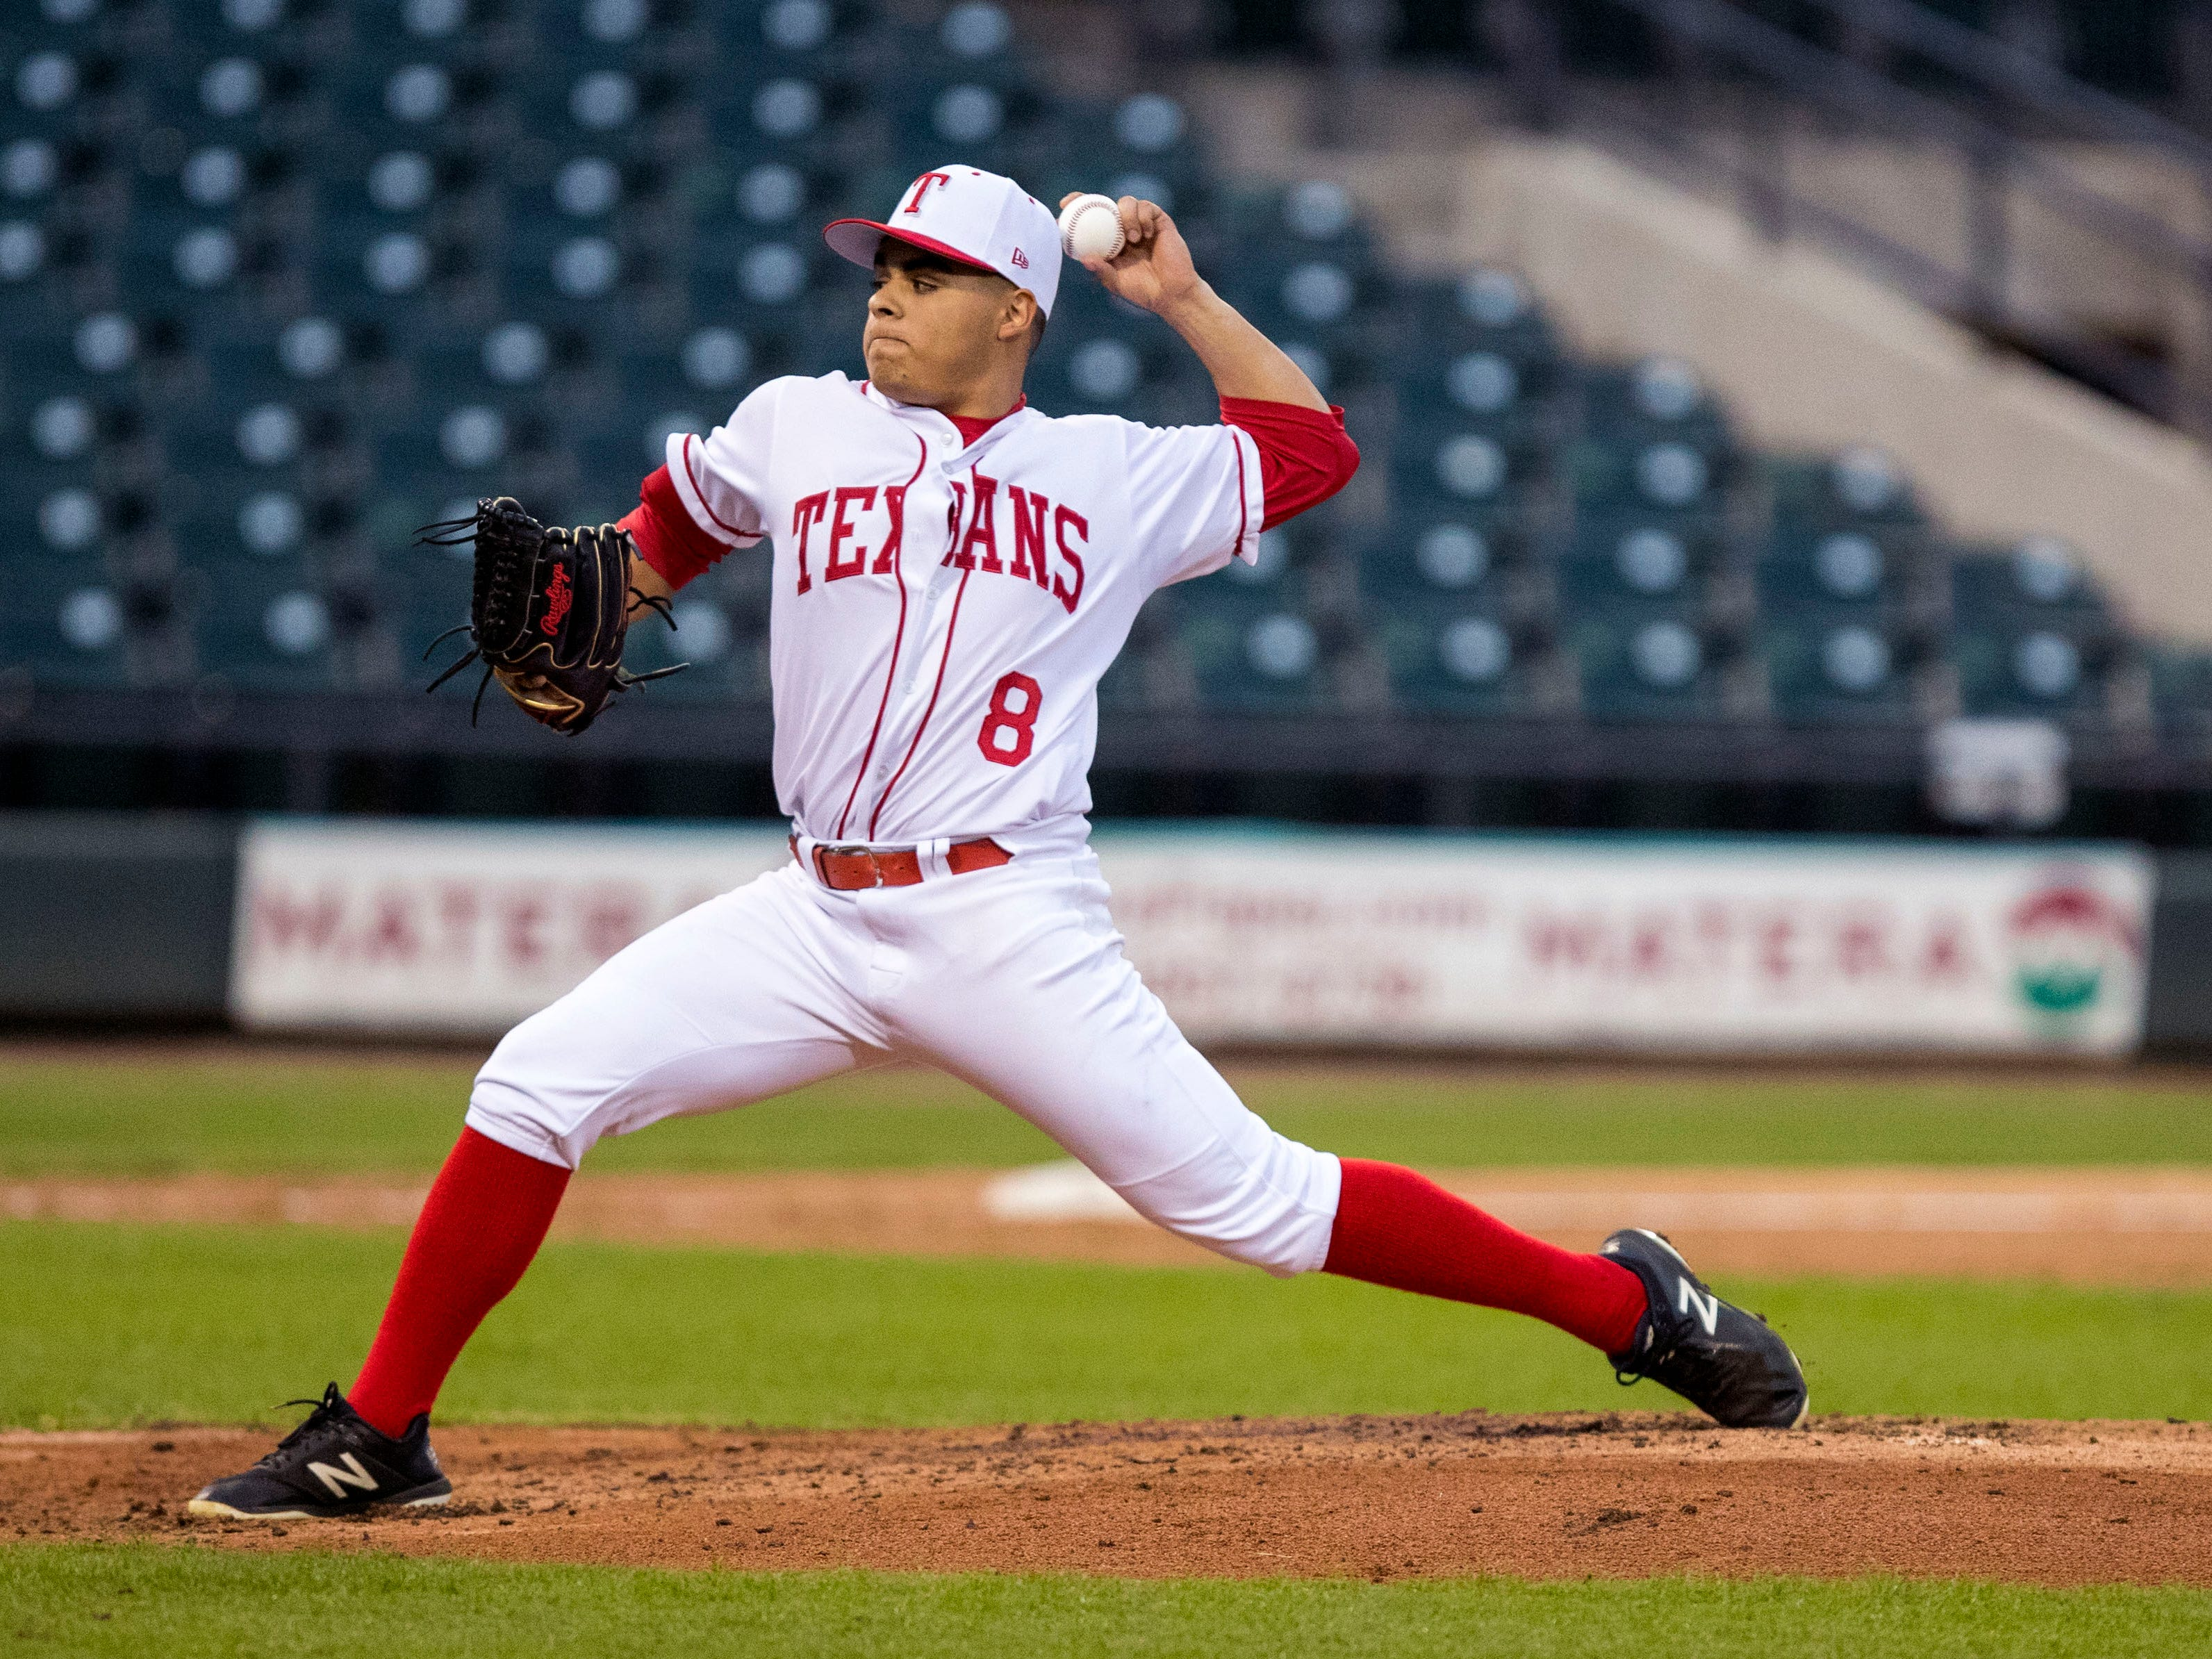 Ray Texans pitcher Isaac Flores gave up seven runs in the game against the Moody Trojans during the season opener at Whataburger Field on Monday, February 18, 2019. Moody took an early lead to beat Ray 7-3.